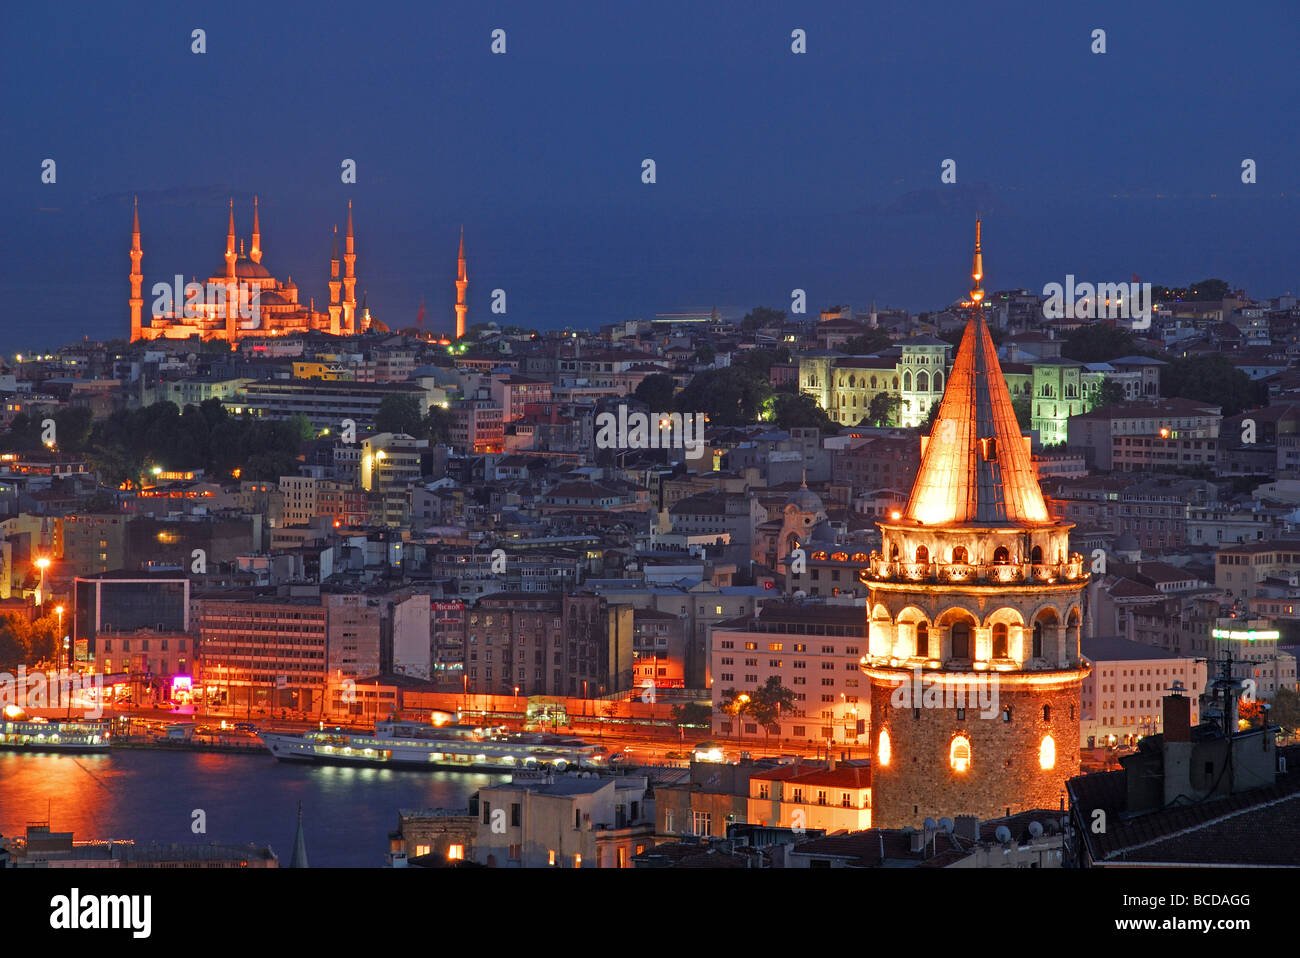 ISTANBUL, TURKEY. Night view of the city, with the Galata Tower on the right and the Blue Mosque in the distance. - Stock Image